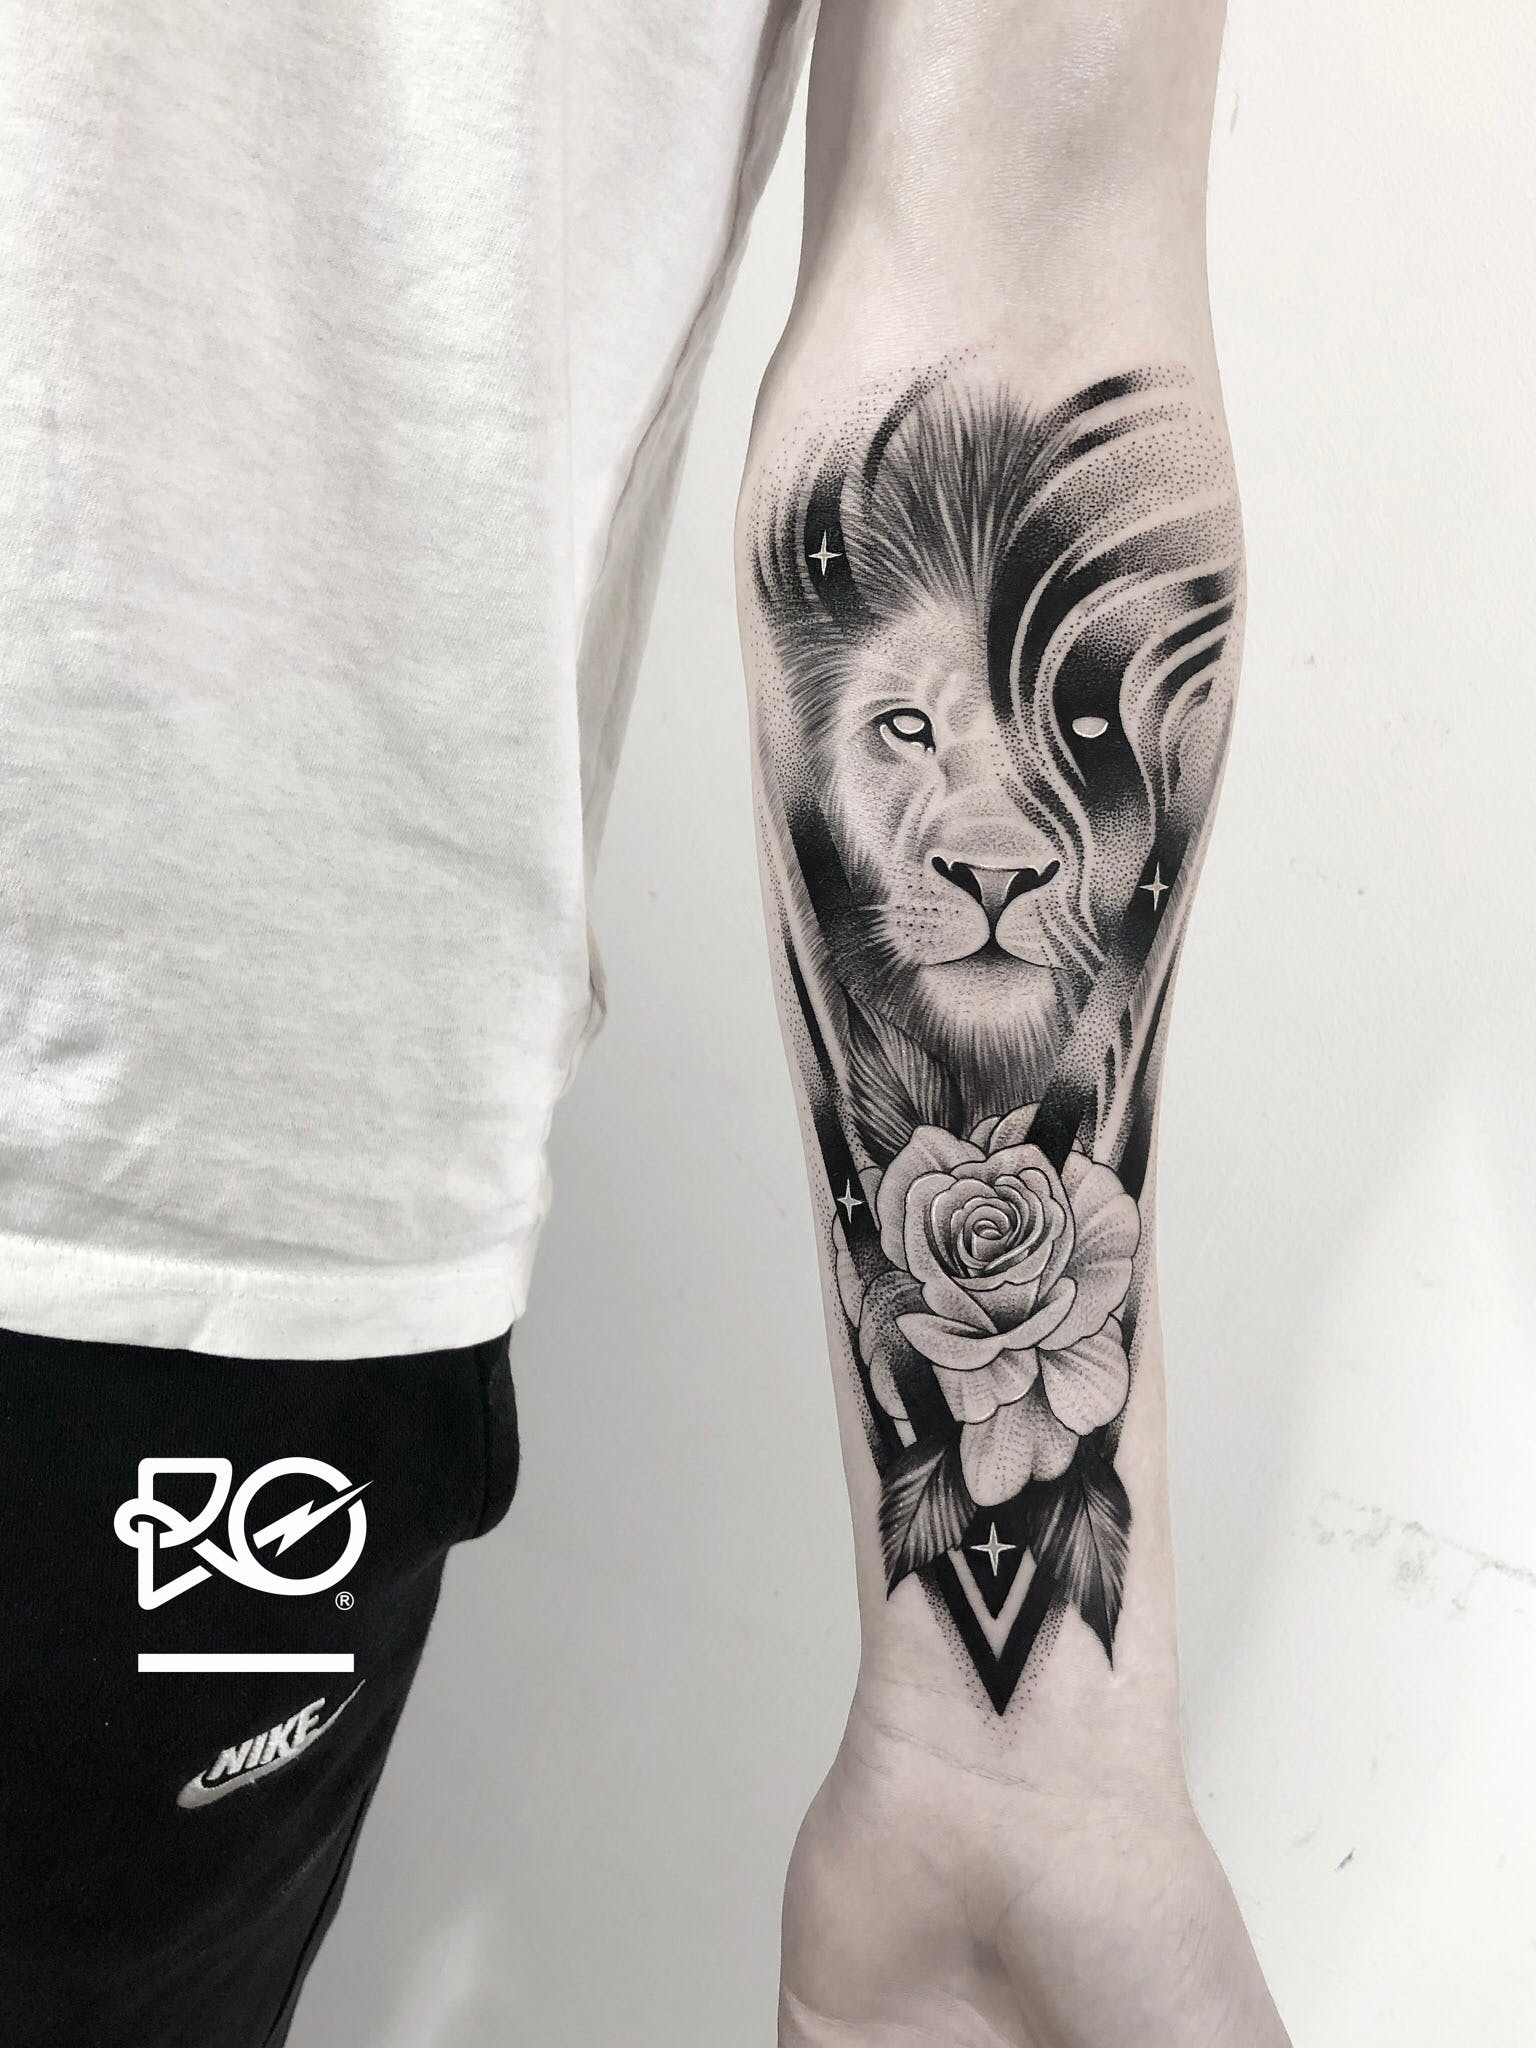 Mystical Lion and Rose Tattoo on Forearm